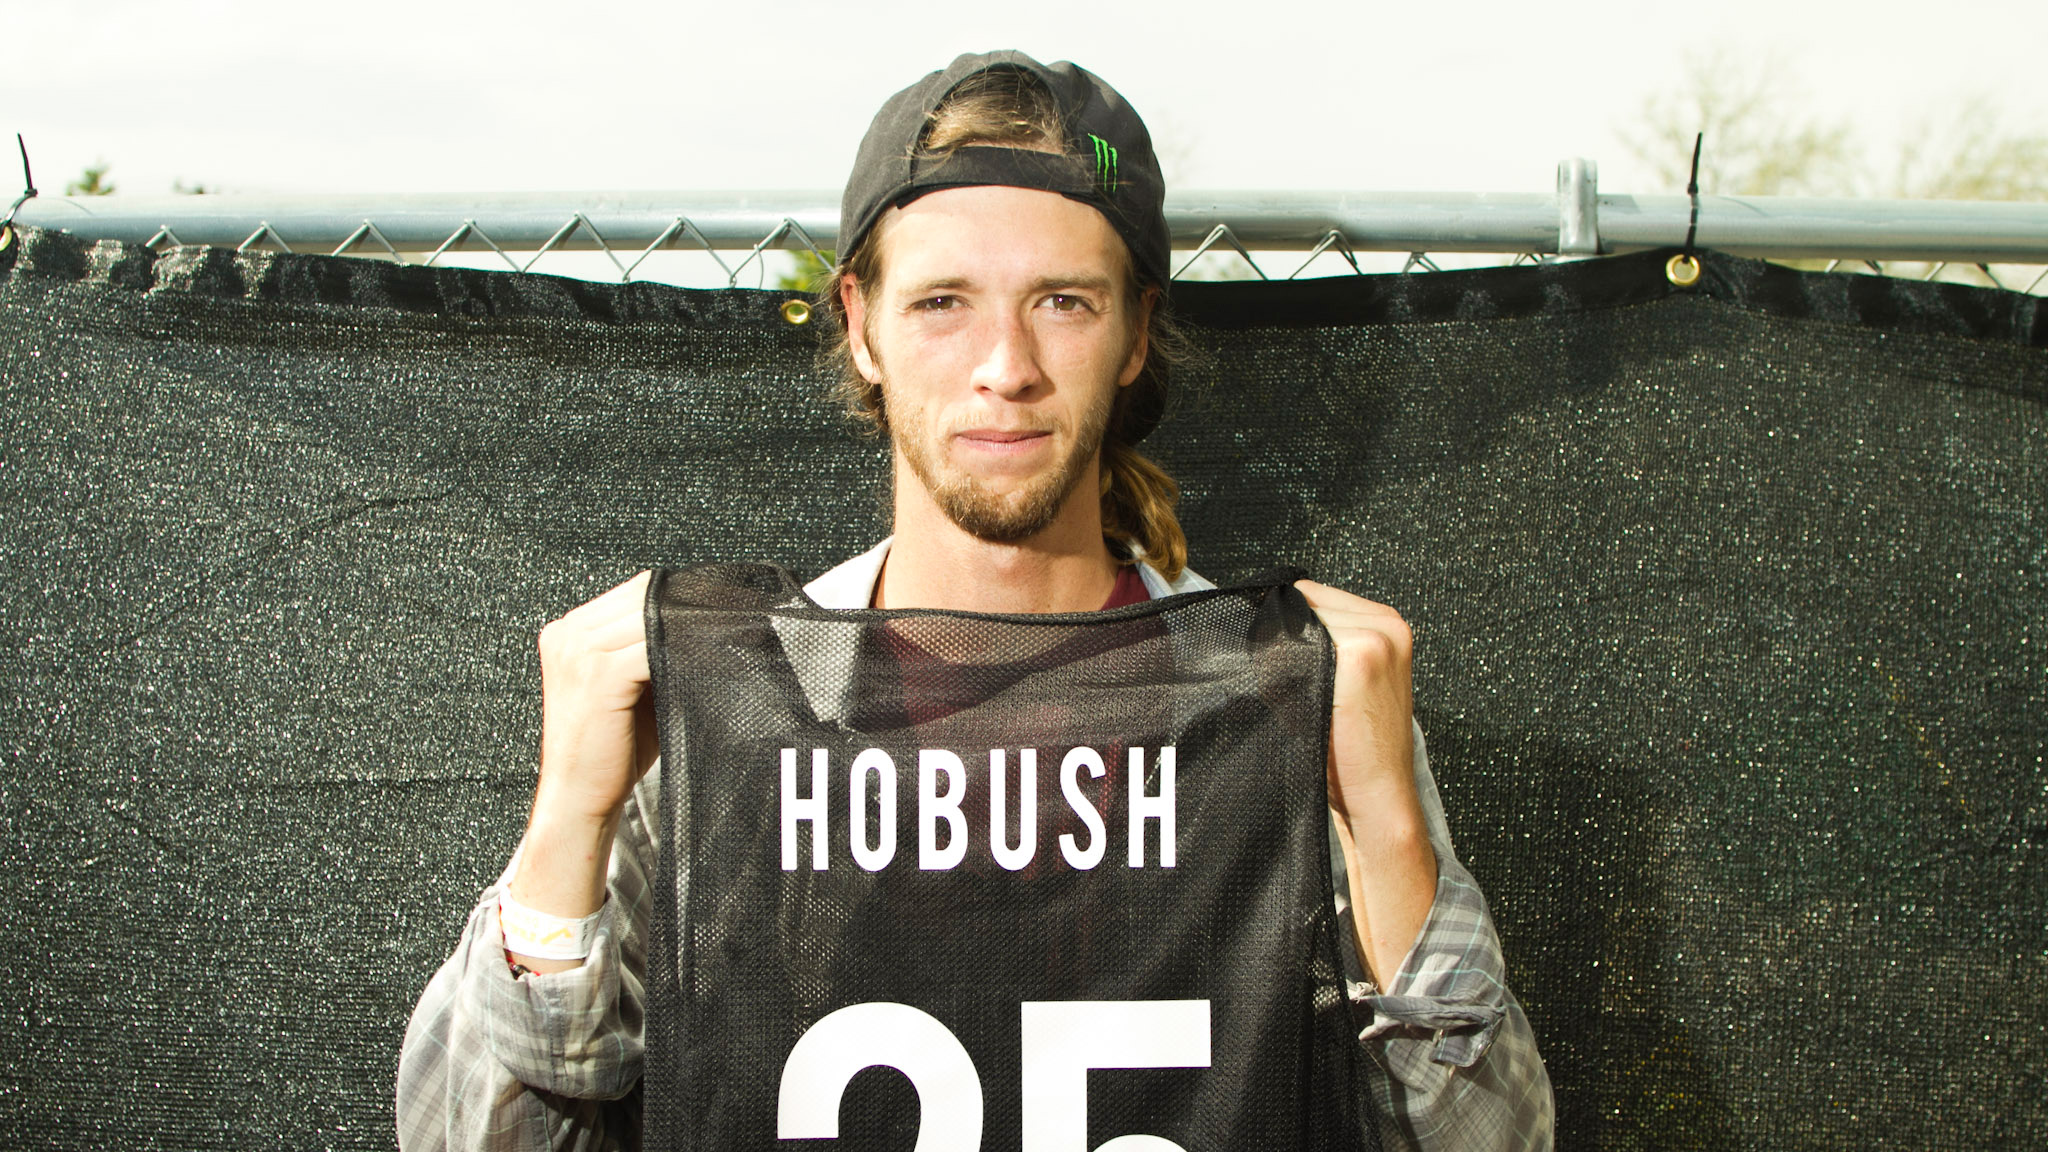 Brandon Hobush ~ Roll Call